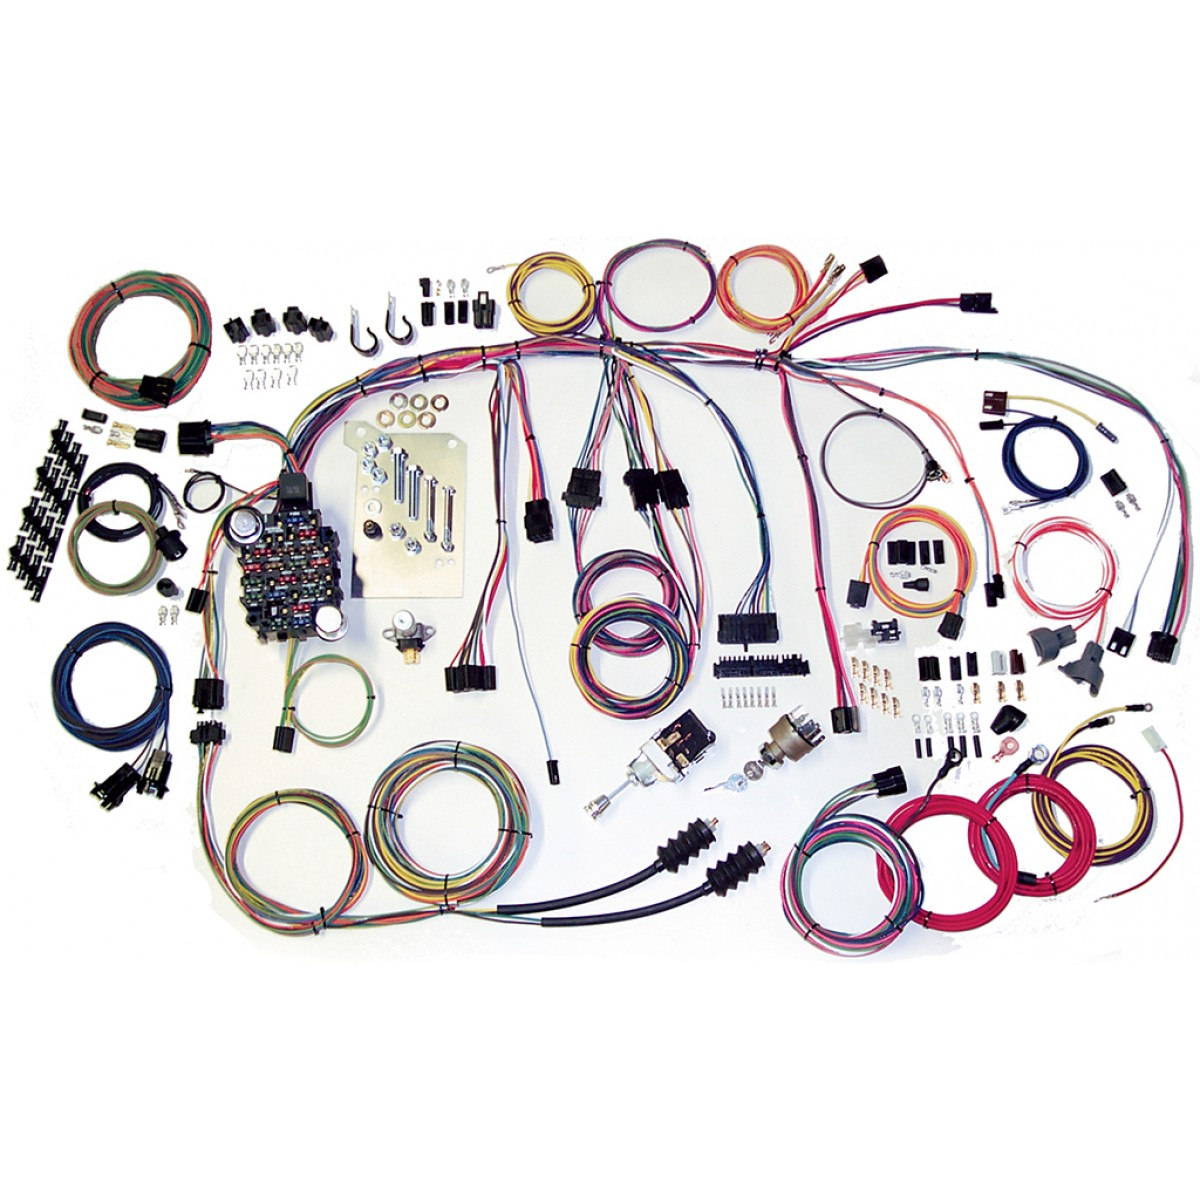 chevy c10 wiring harness complete wiring harness kit 1960 1966 rh code510 com 1983 Chevy Van Wiring Harness On Chevy S10 Wiring Harness Diagram